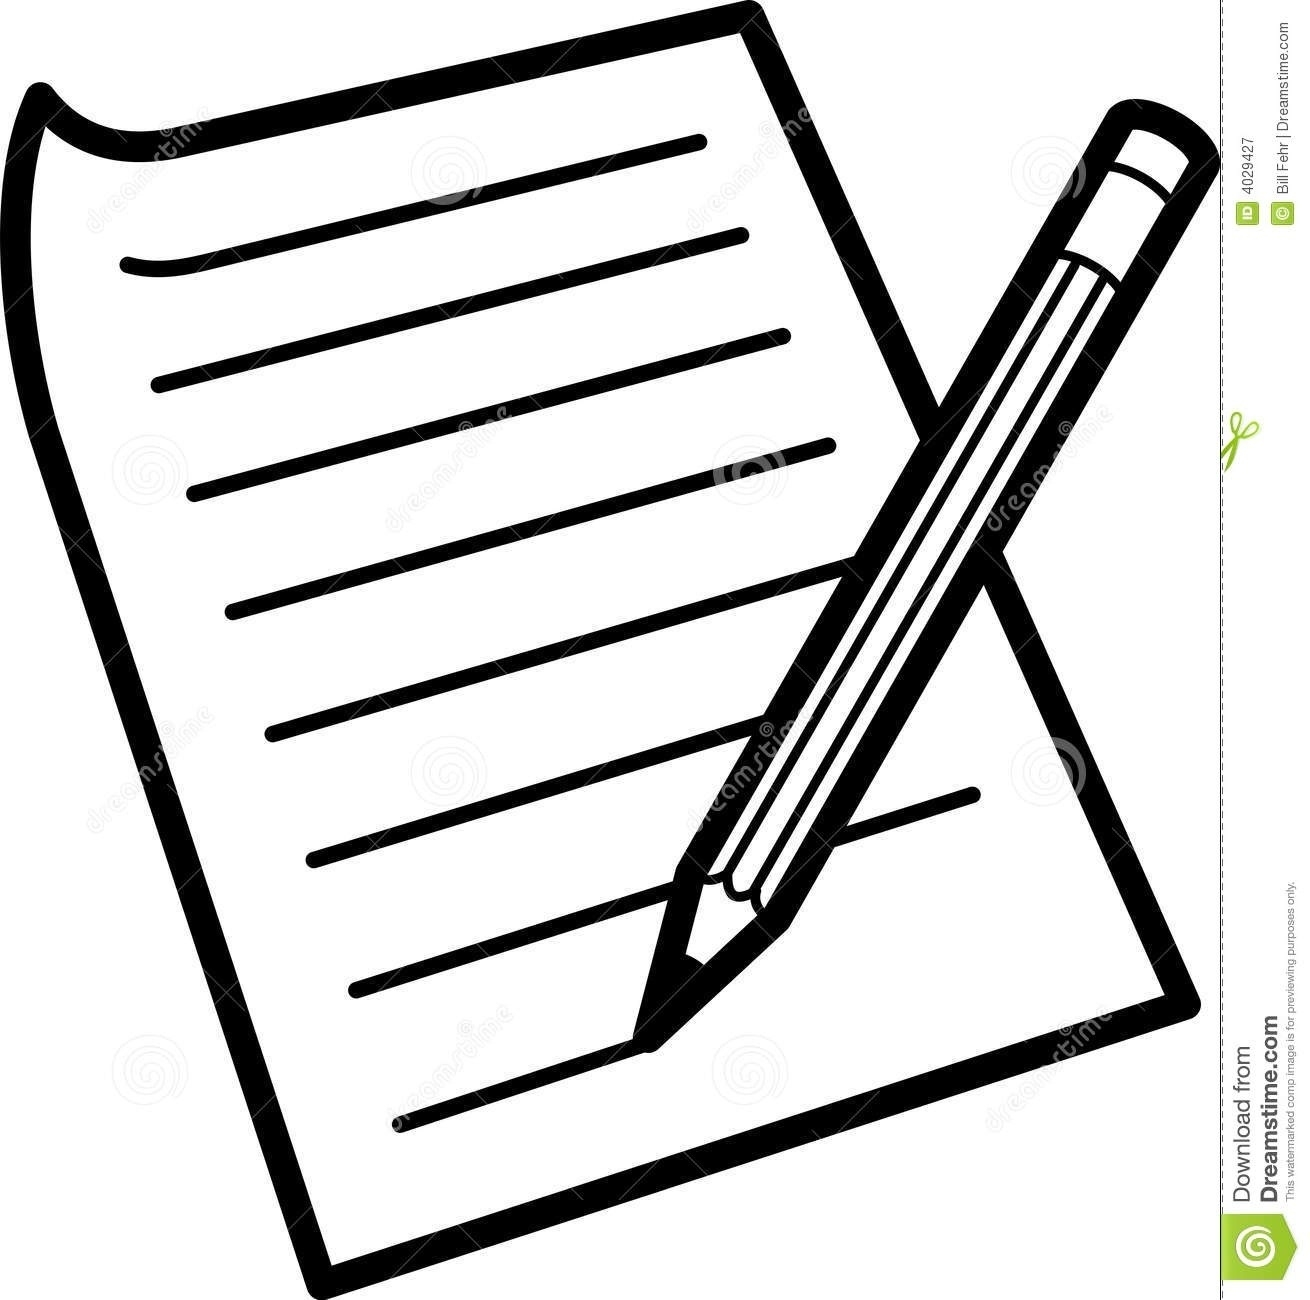 Pen Writing On Paper Clipart.